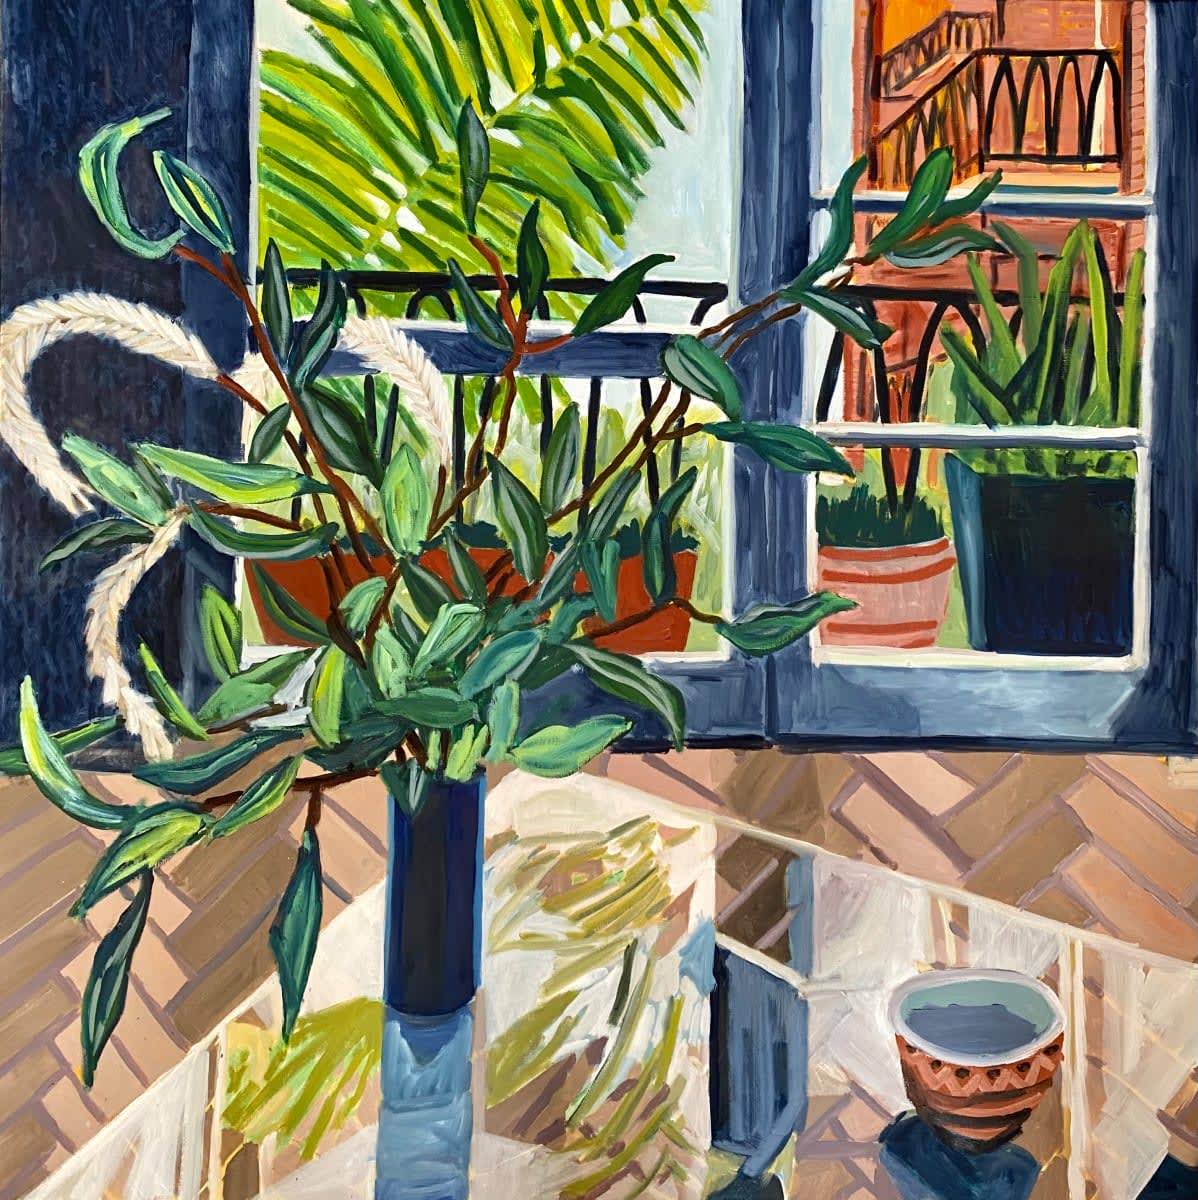 """<span class=""""link fancybox-details-link""""><a href=""""/artists/88-kate-nielsen/works/1549-kate-nielsen-view-from-darling-point/"""">View Detail Page</a></span><div class=""""artist""""><strong>Kate Nielsen</strong></div> <div class=""""title""""><em>View From Darling Point</em></div> <div class=""""medium"""">Acrylic on Canvas </div> <div class=""""dimensions"""">42 x 42 inches </div>"""